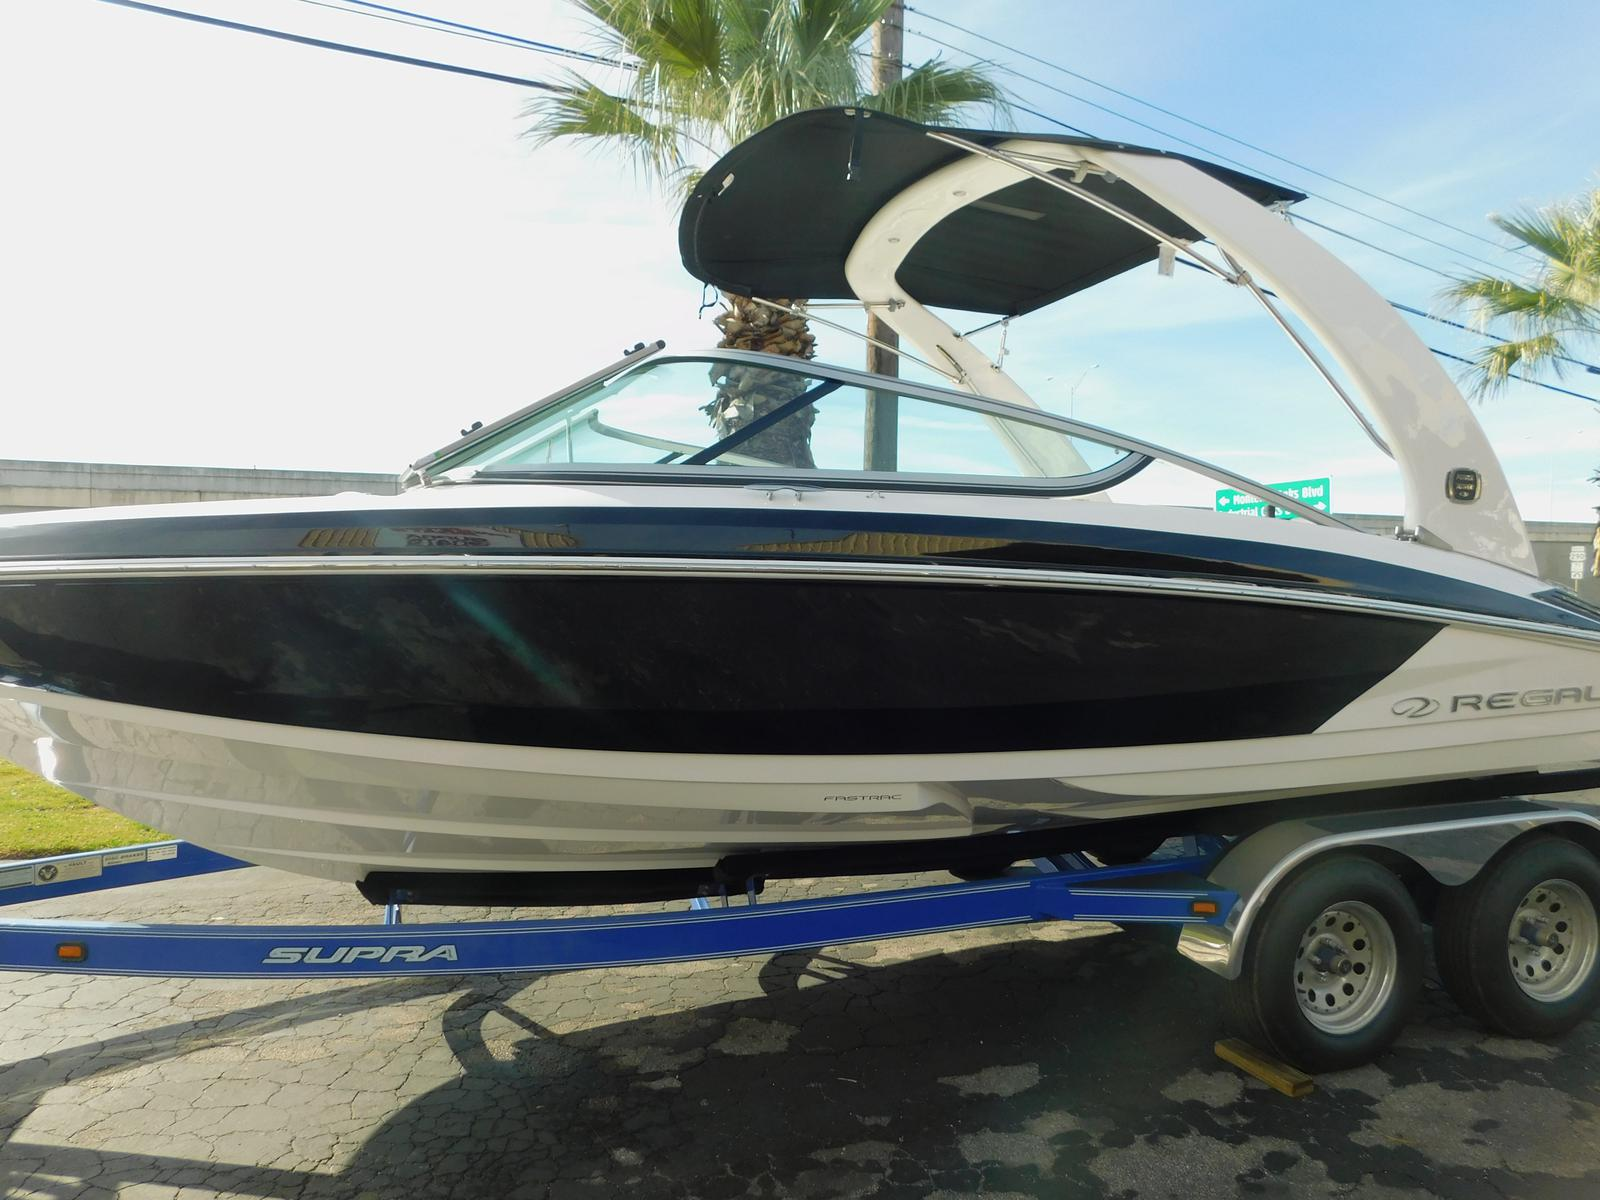 2019 Regal 2100 for sale in Austin, TX  South Austin Marine